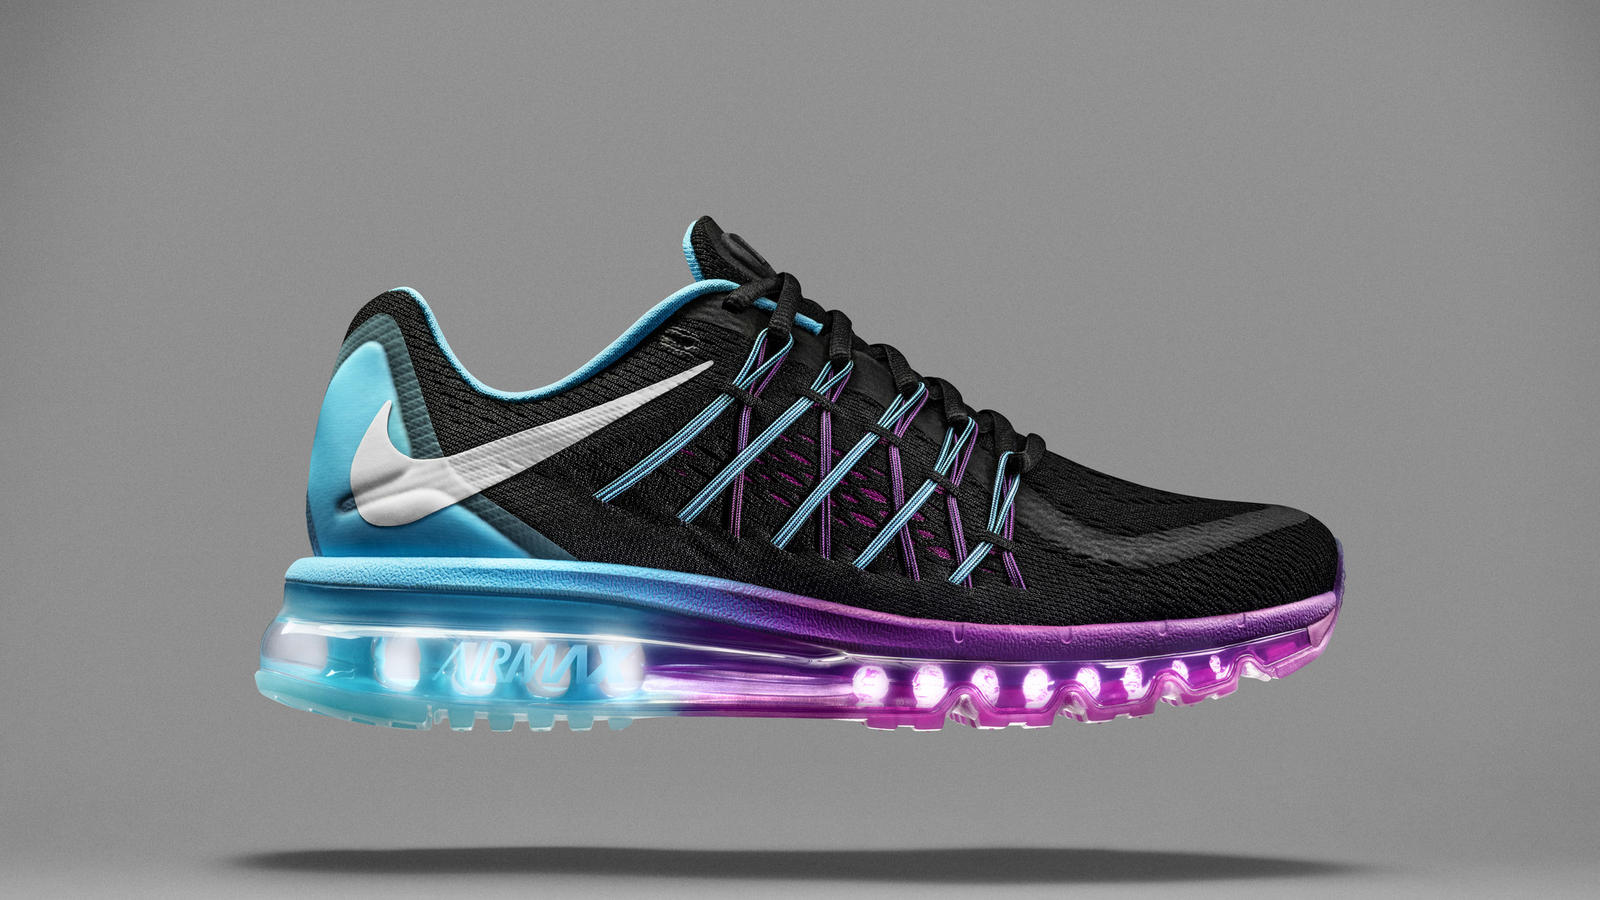 Nike Air Max 2015: Ultra-Soft Cushioning, Dynamic Fit and ...